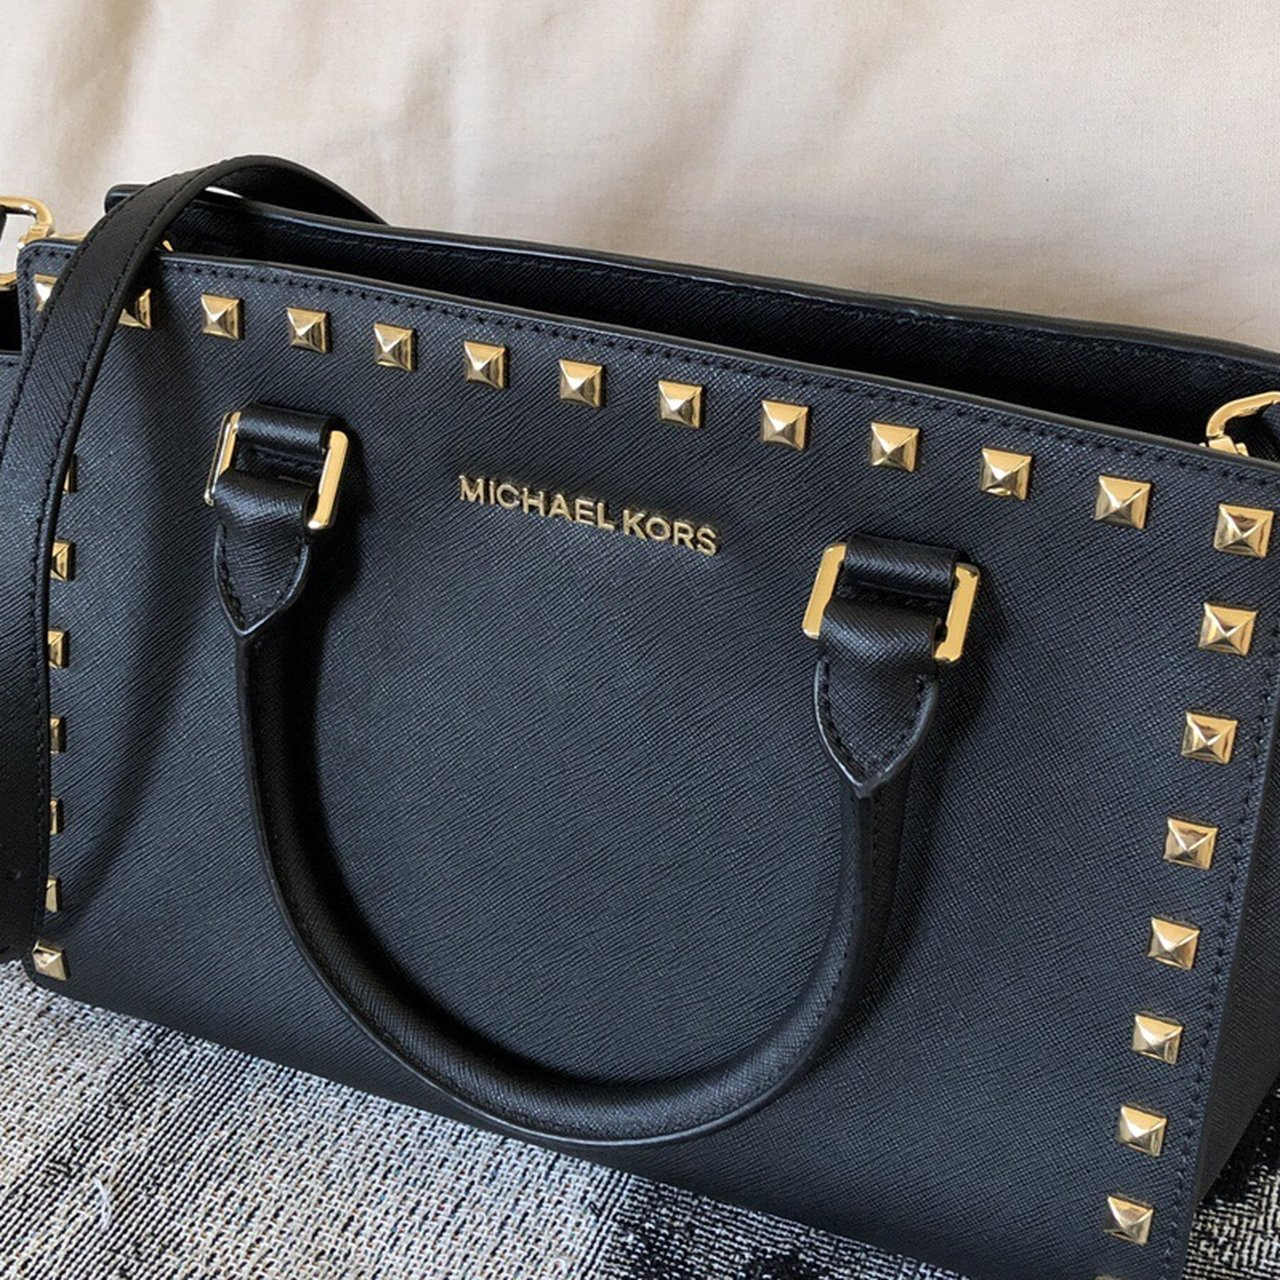 Michael Kors Bag Hamilton large, Saffiano blackgold